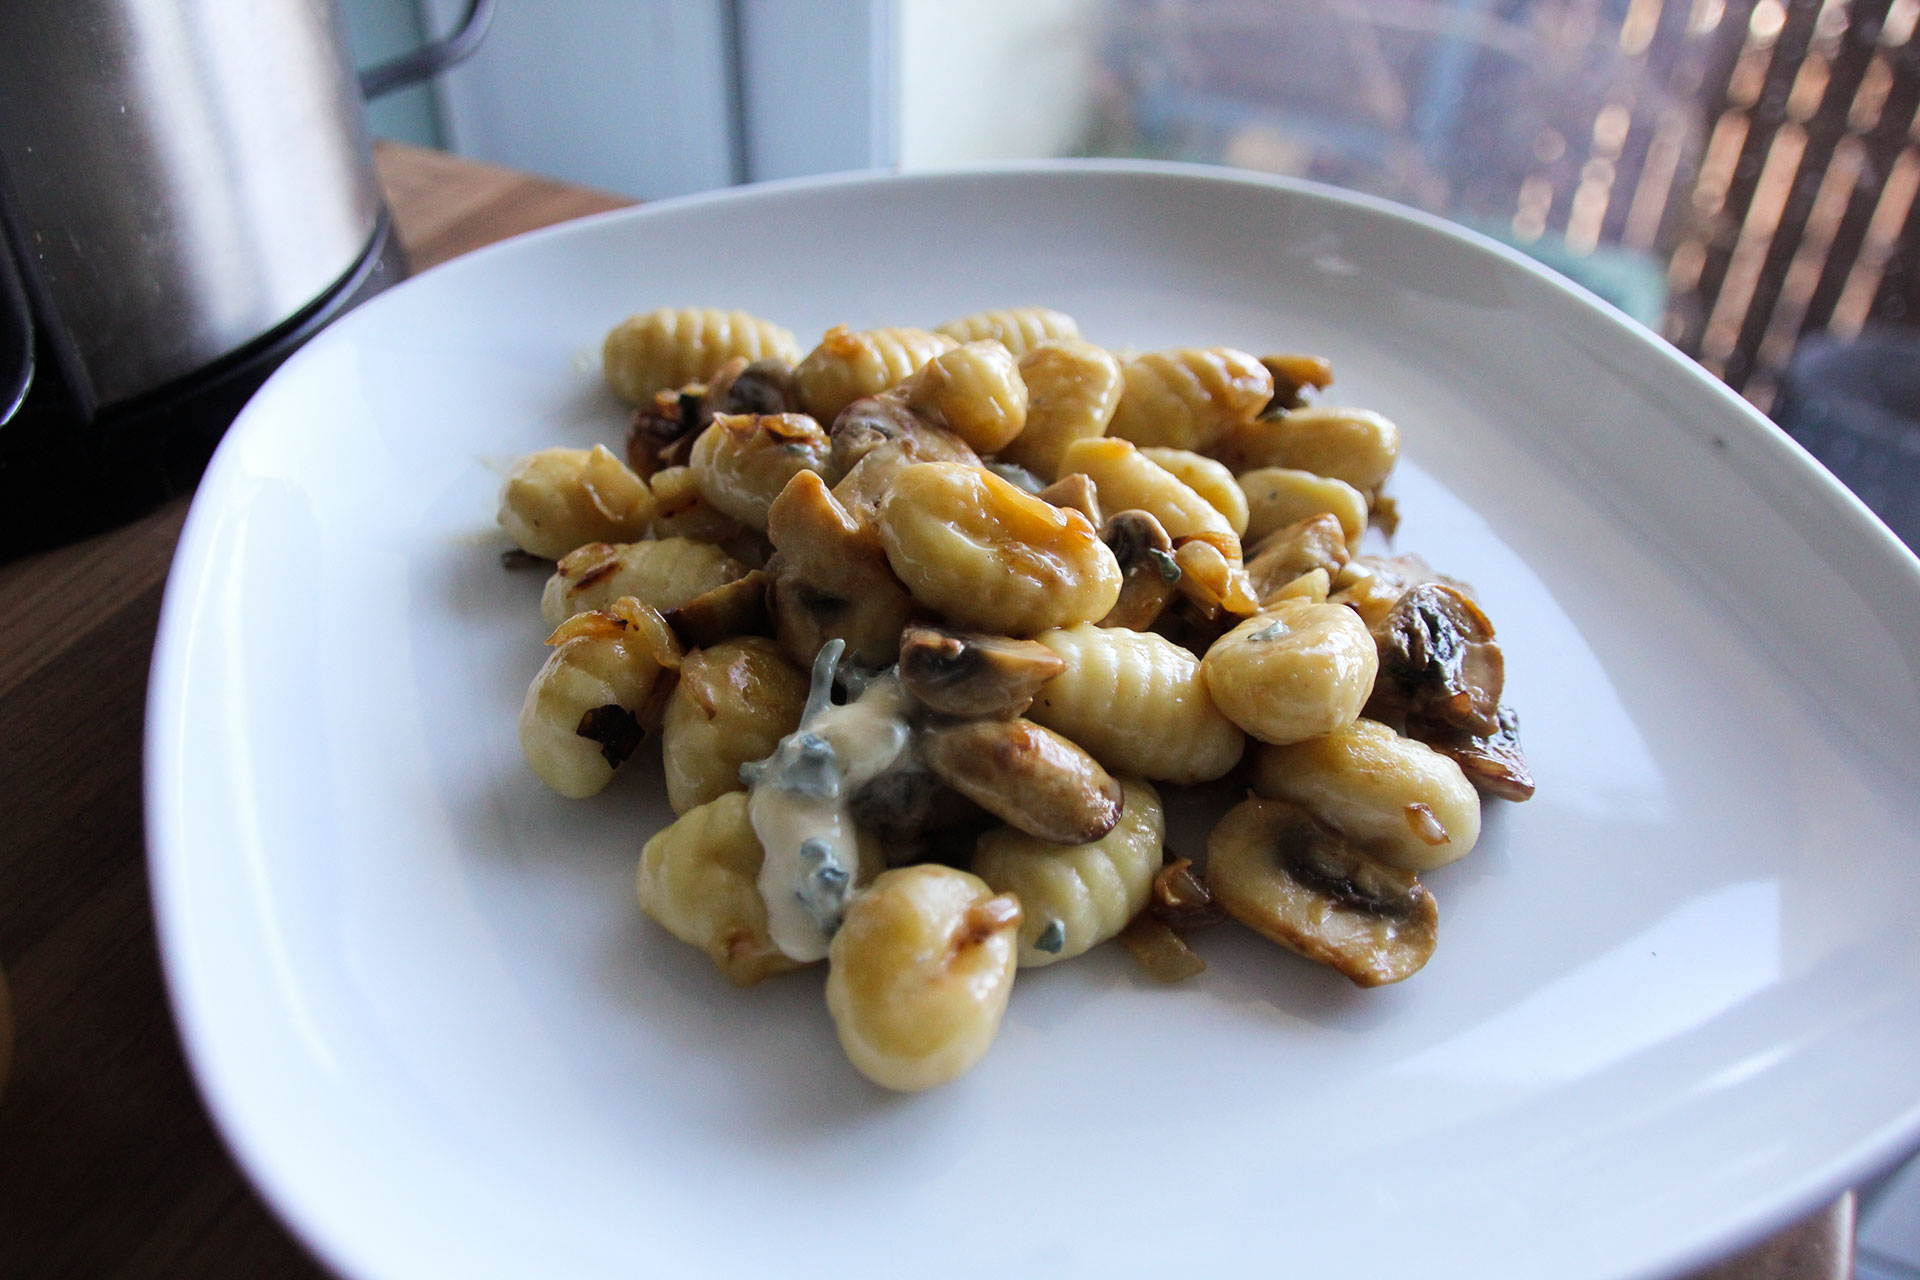 Gnocci with blue cheese and mushroom